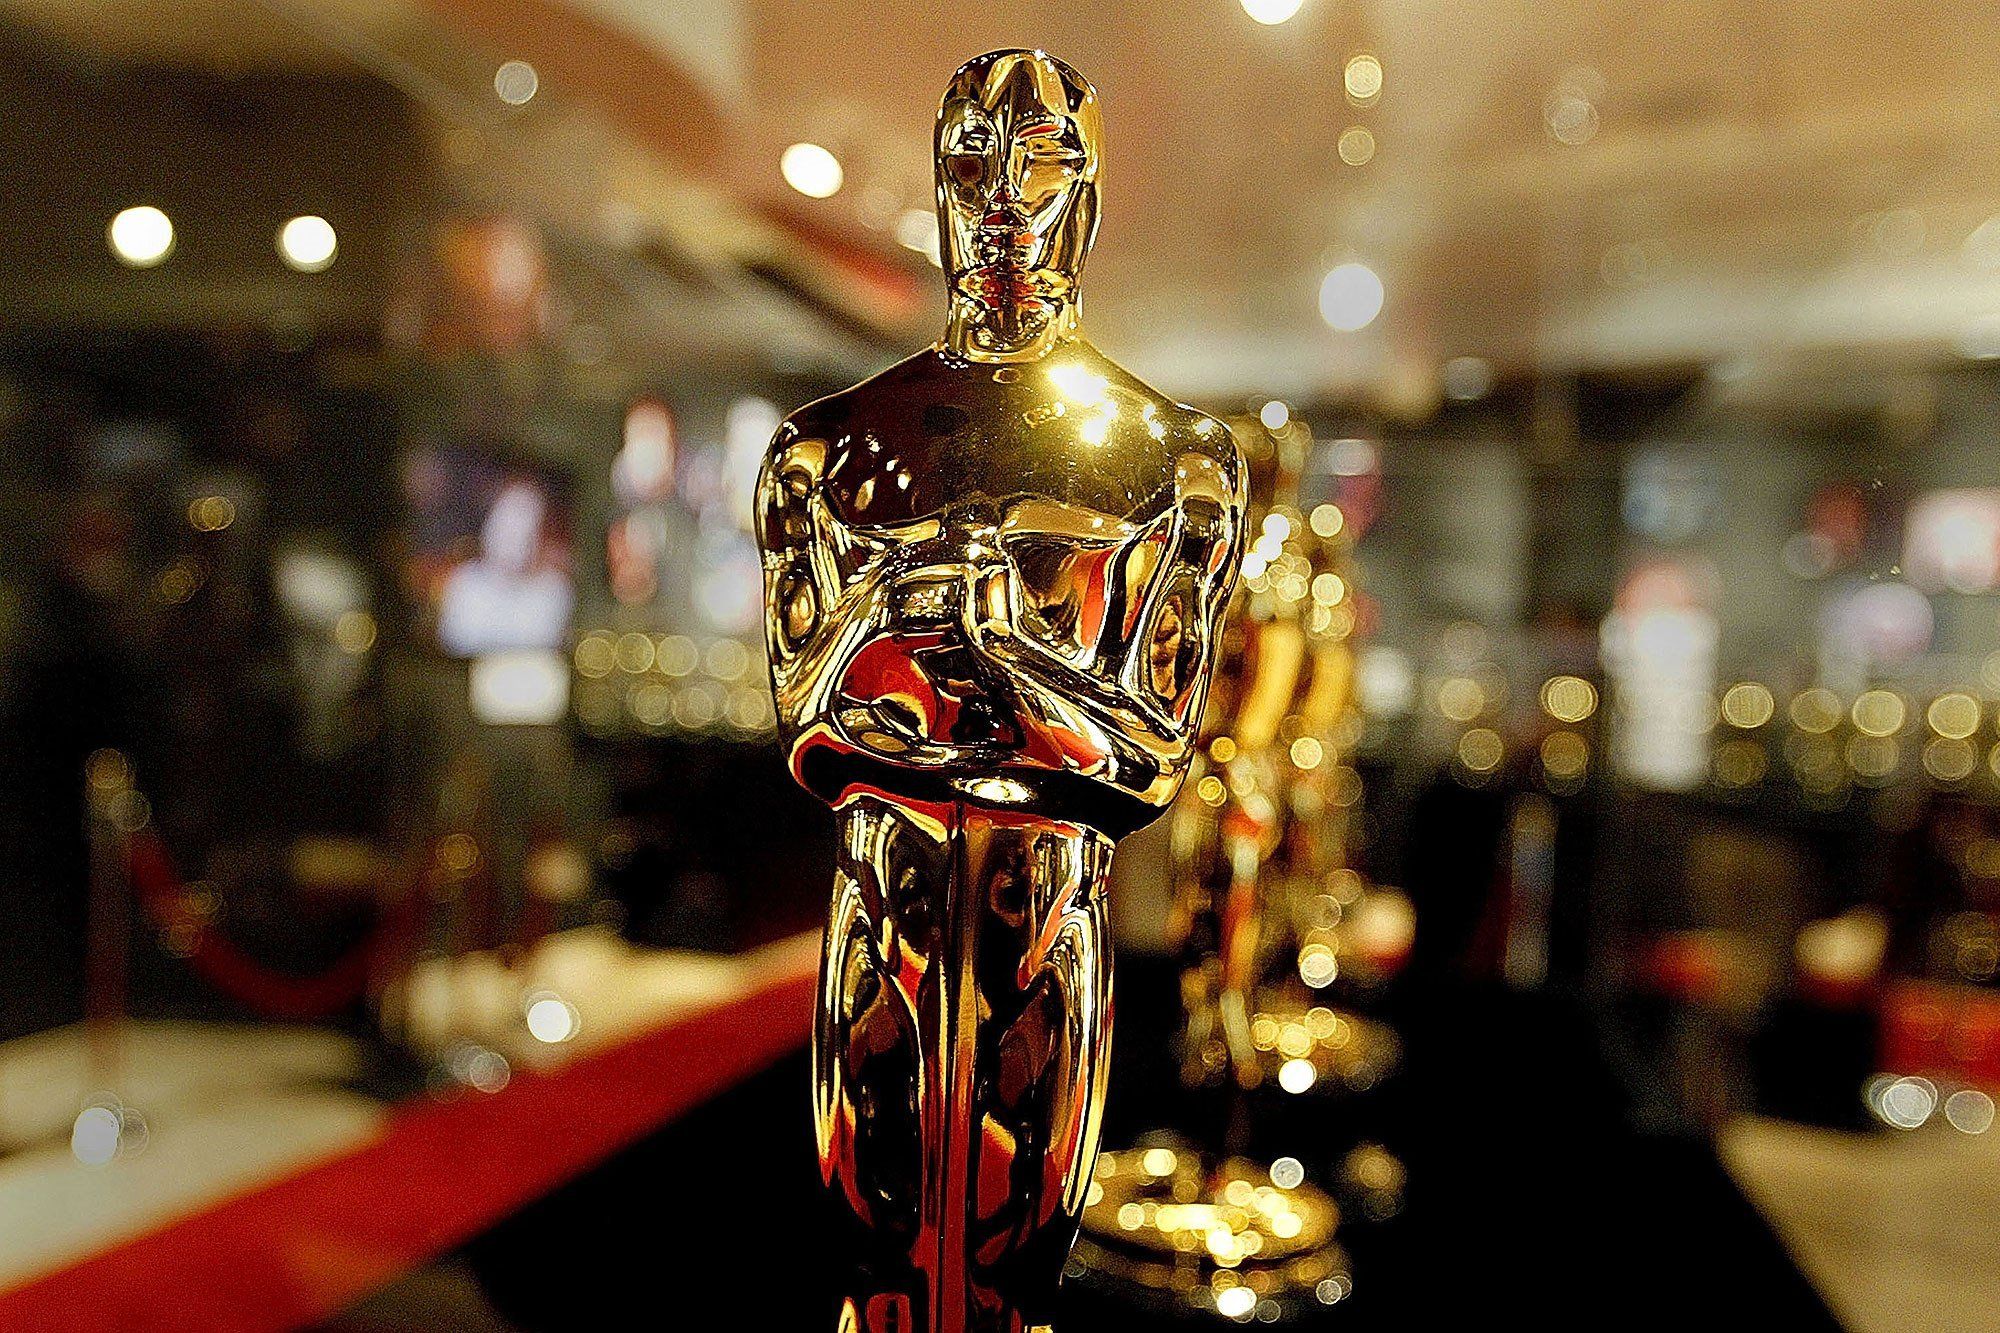 HOLLYWOOD - FEBRUARY 20:  A display case is seen full of Oscar statues February 20, 2004 in Hollywood, California. These are the Oscar statuettes that will be handed out on February 29 at the 76th Academy Awards ceremony and will be on display at the Hollywood & Highland entertainment complex.  (Photo by Carlo Allegri/Getty Images)